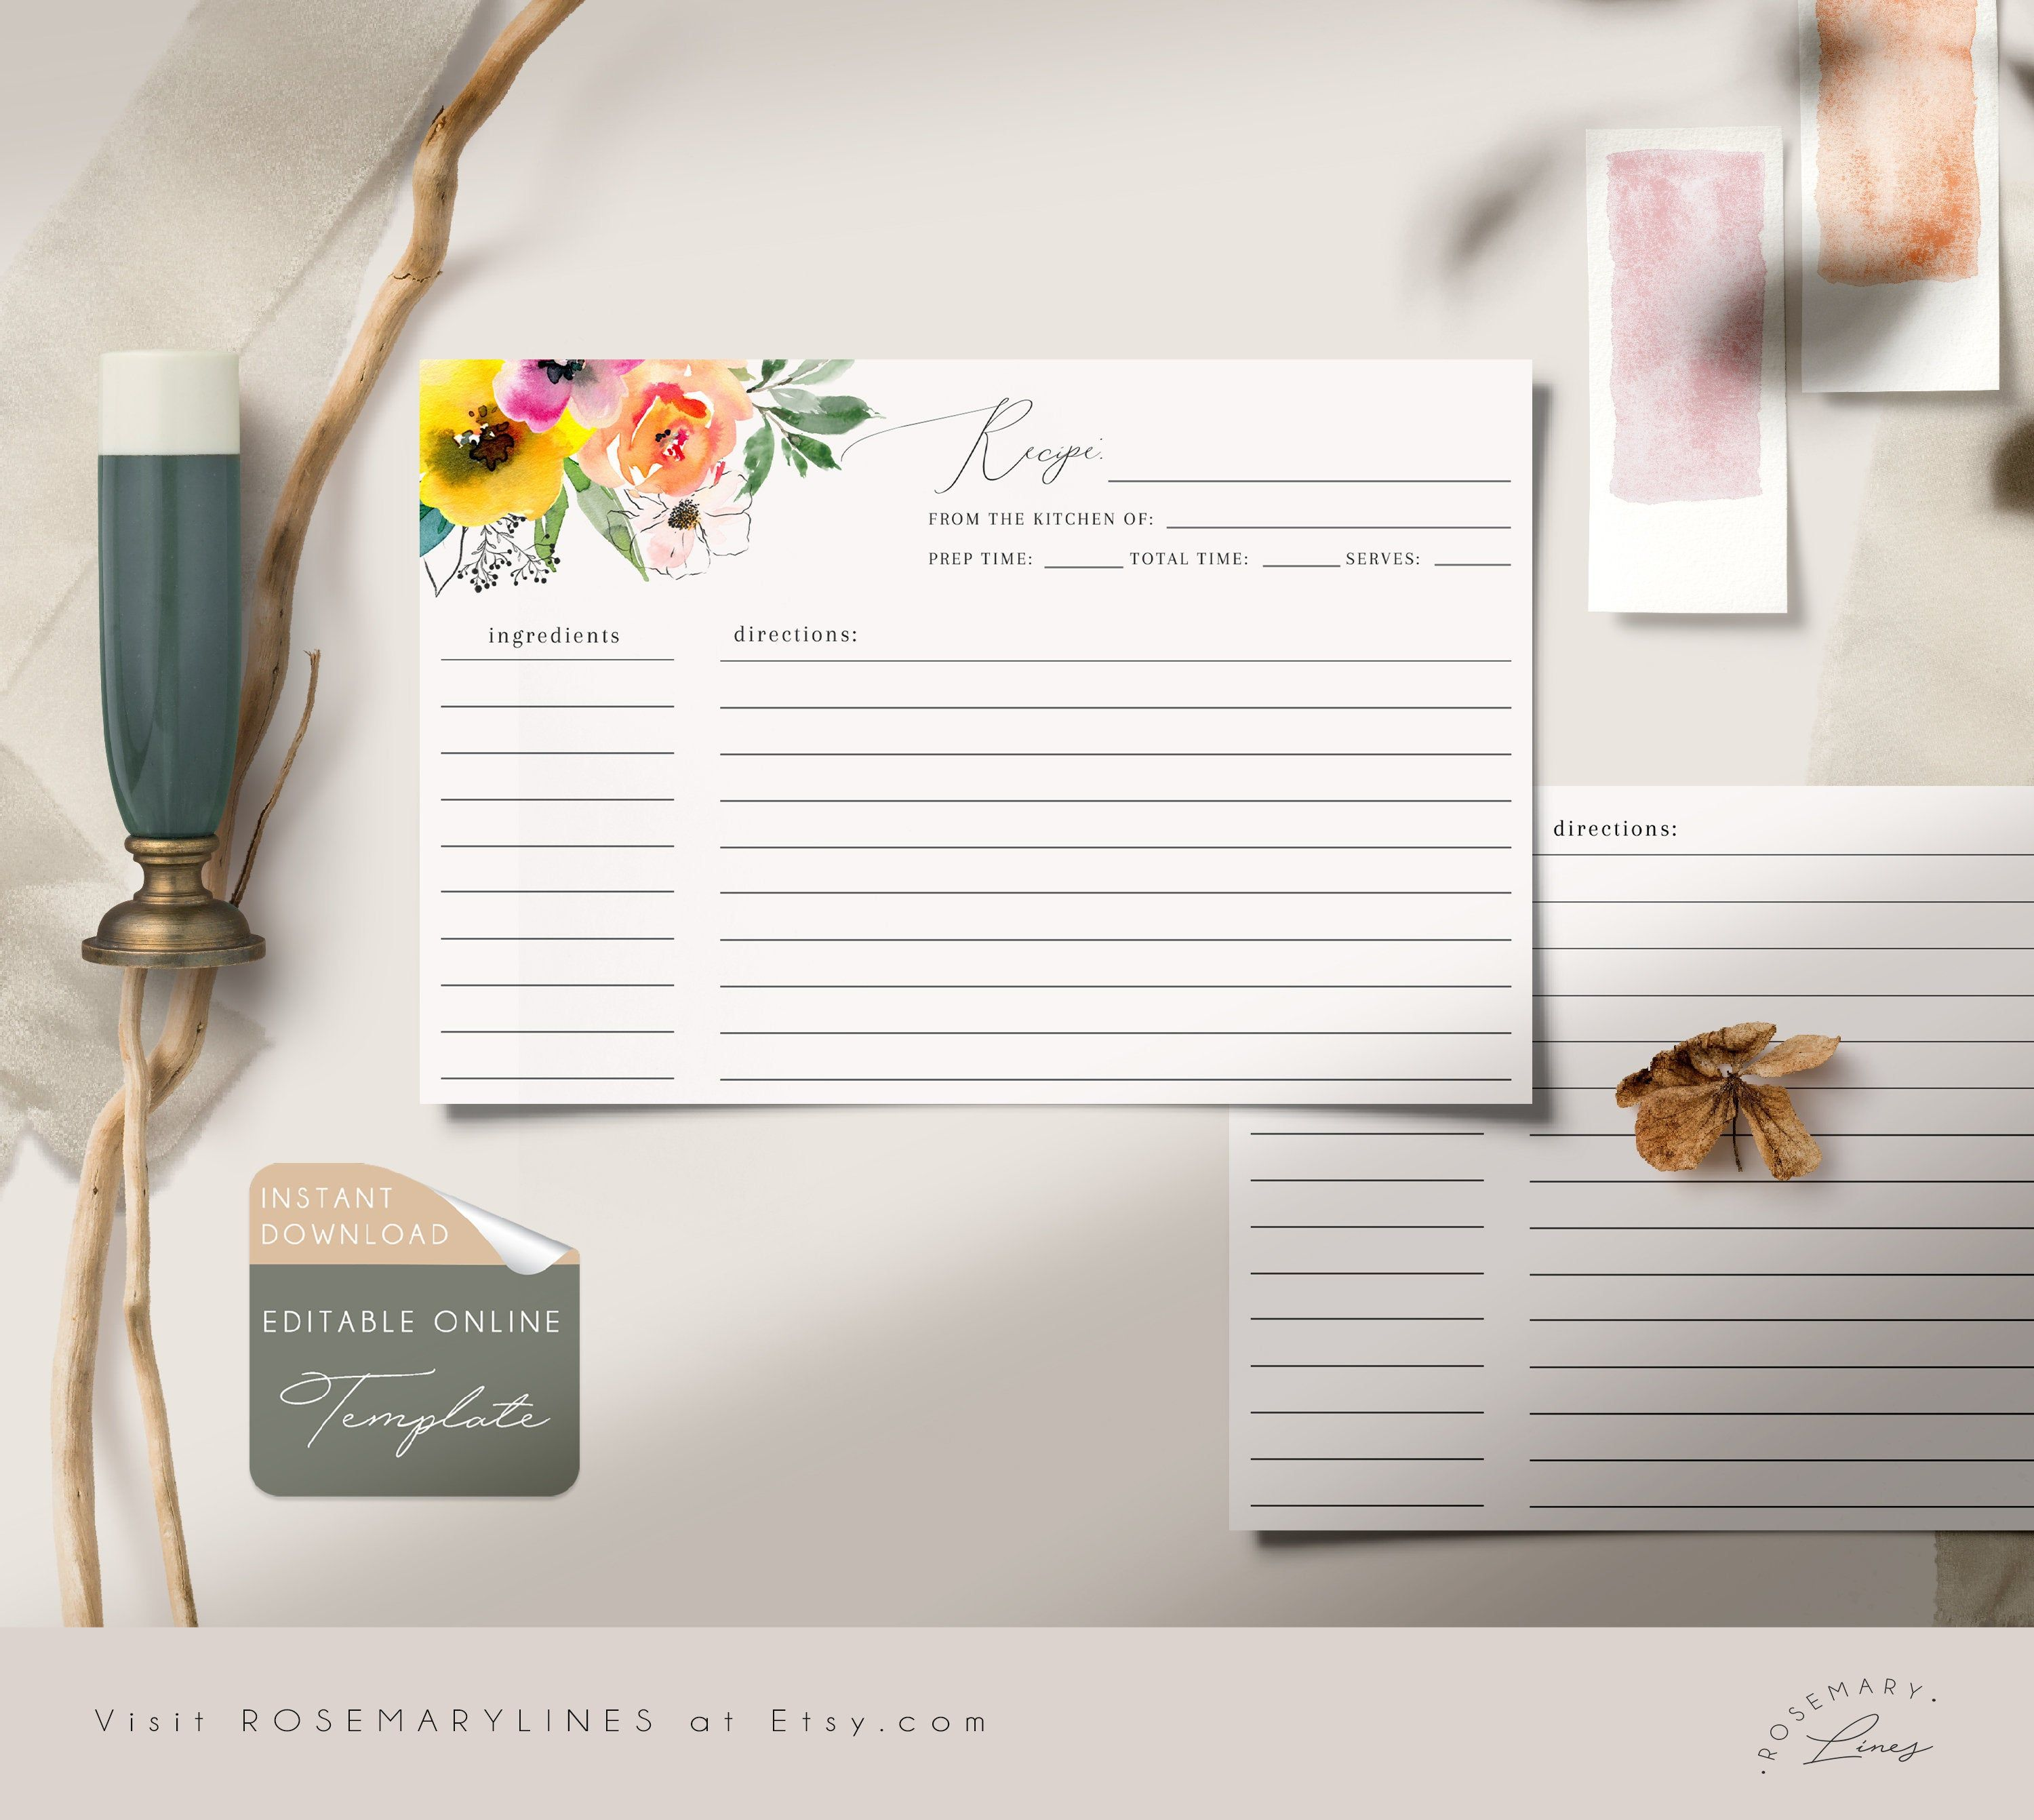 Editable Recipe Card Template Bright Floral Bridal Shower Recipe Cards Summer Or In 2020 Bridal Shower Recipes Cards Printable Bridal Shower Games Etsy Bridal Shower